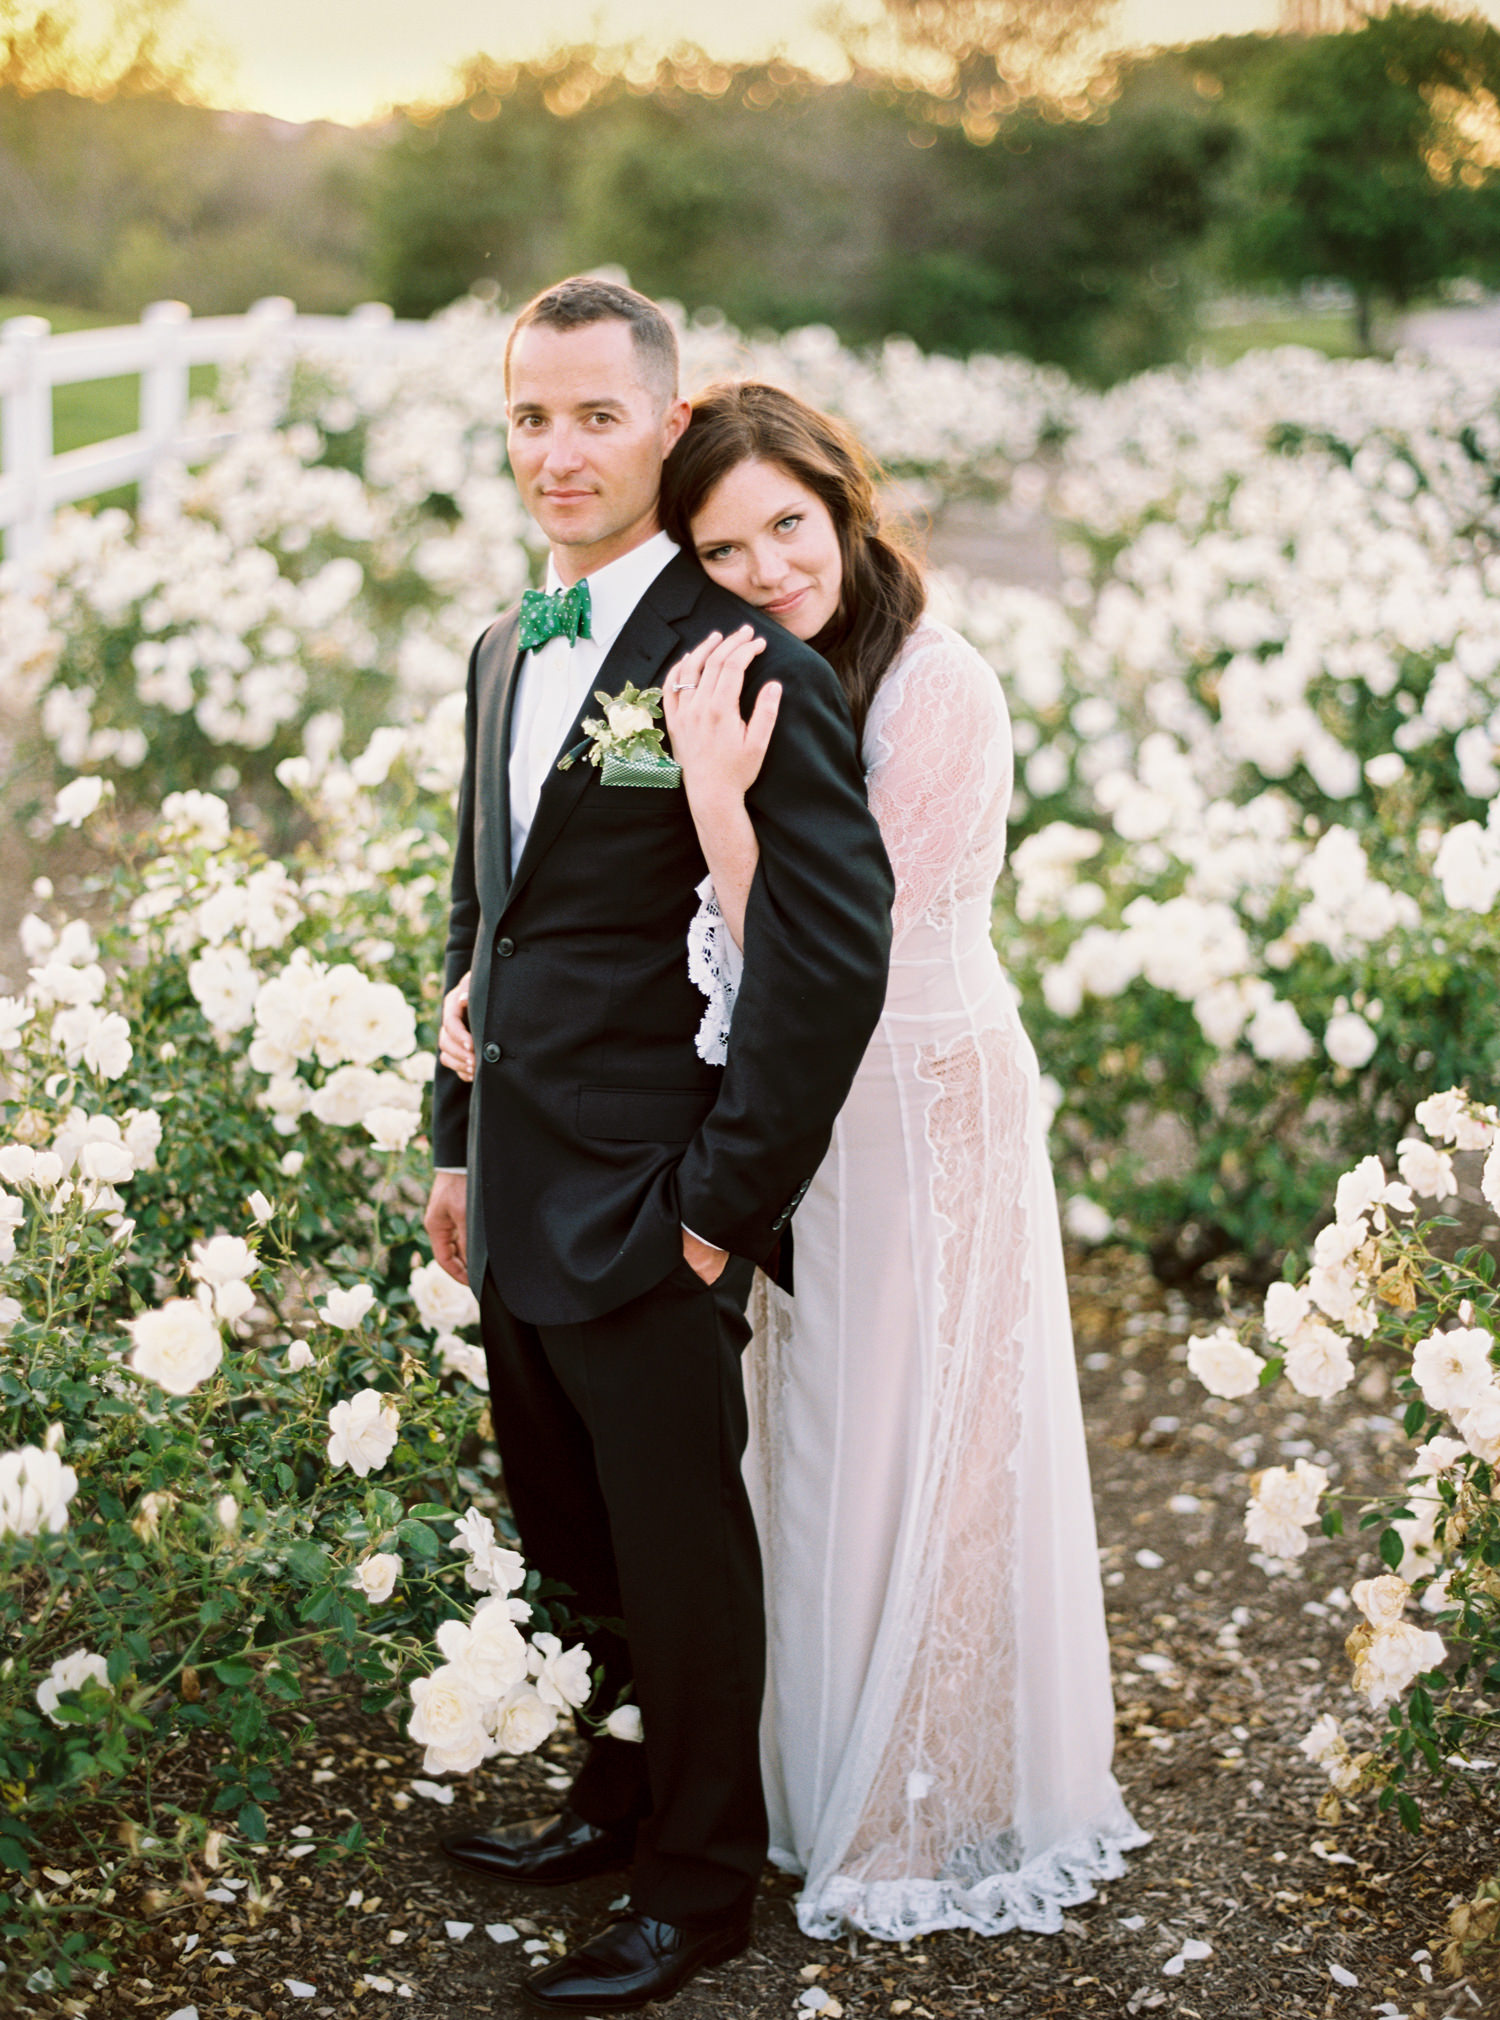 ryan-flynn-best-wedding-photography-2015-seattle-film-photographer-0054.JPG